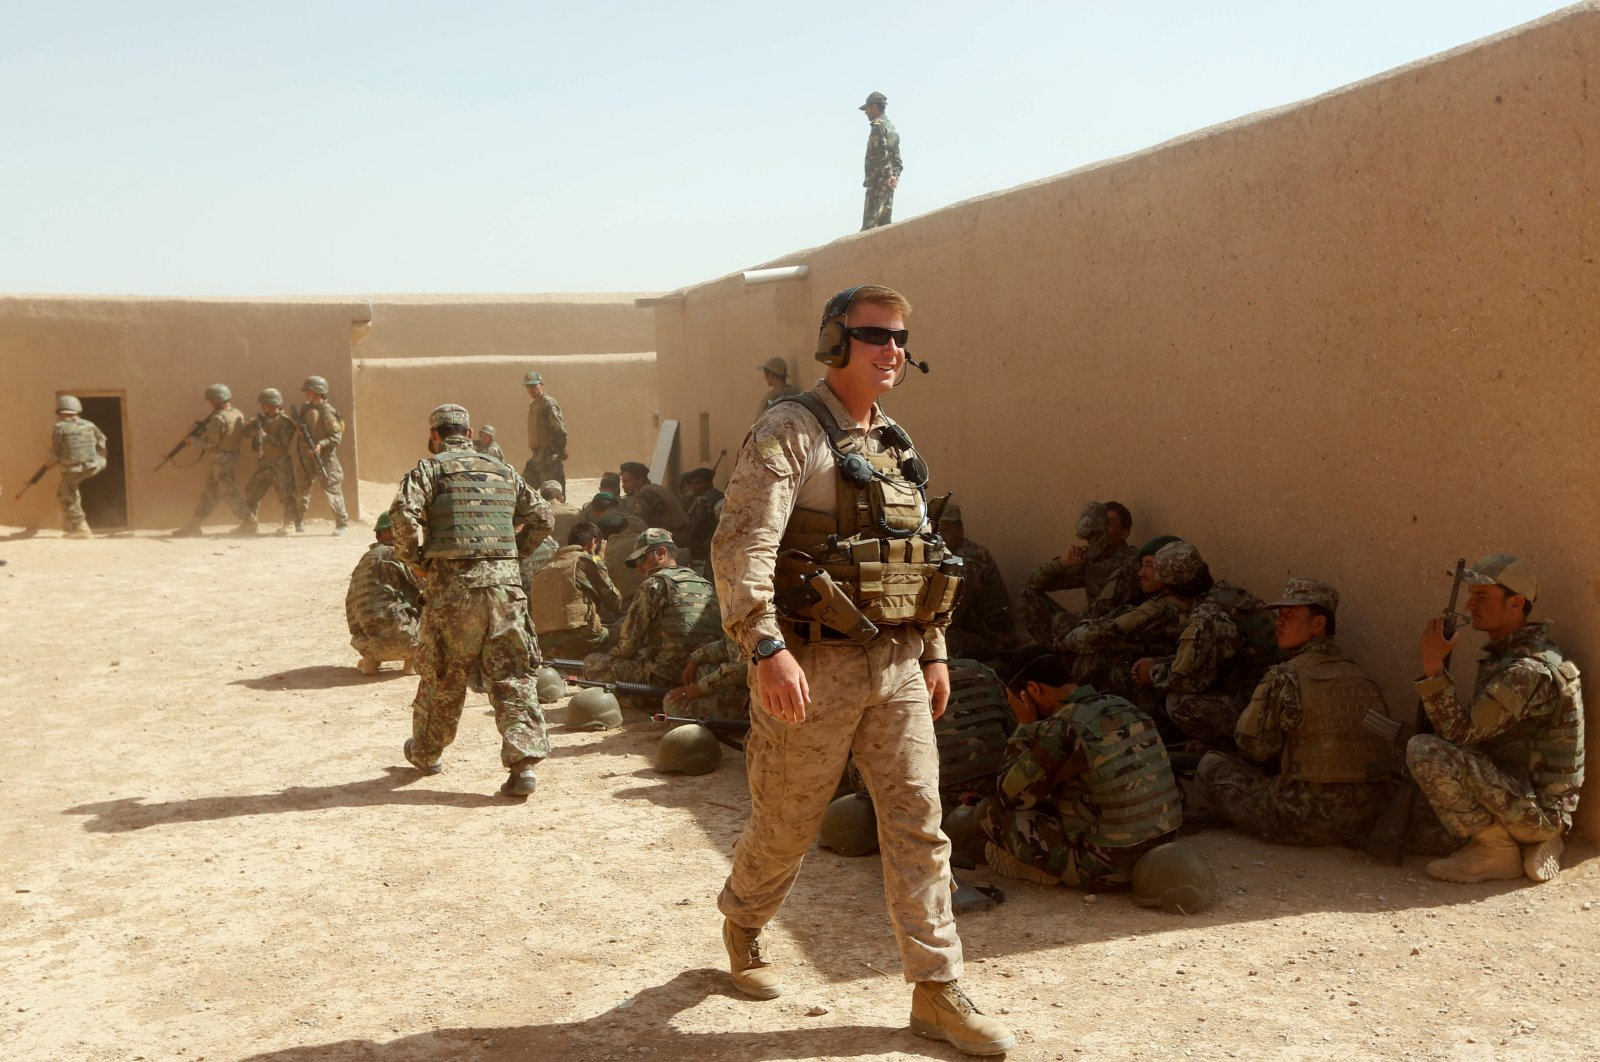 A U.S. Marine (C) walks as Afghan National Army (ANA) soldiers attend a training exercise in Helmand province, Afghanistan, July 5, 2017. (Reuters Photo)